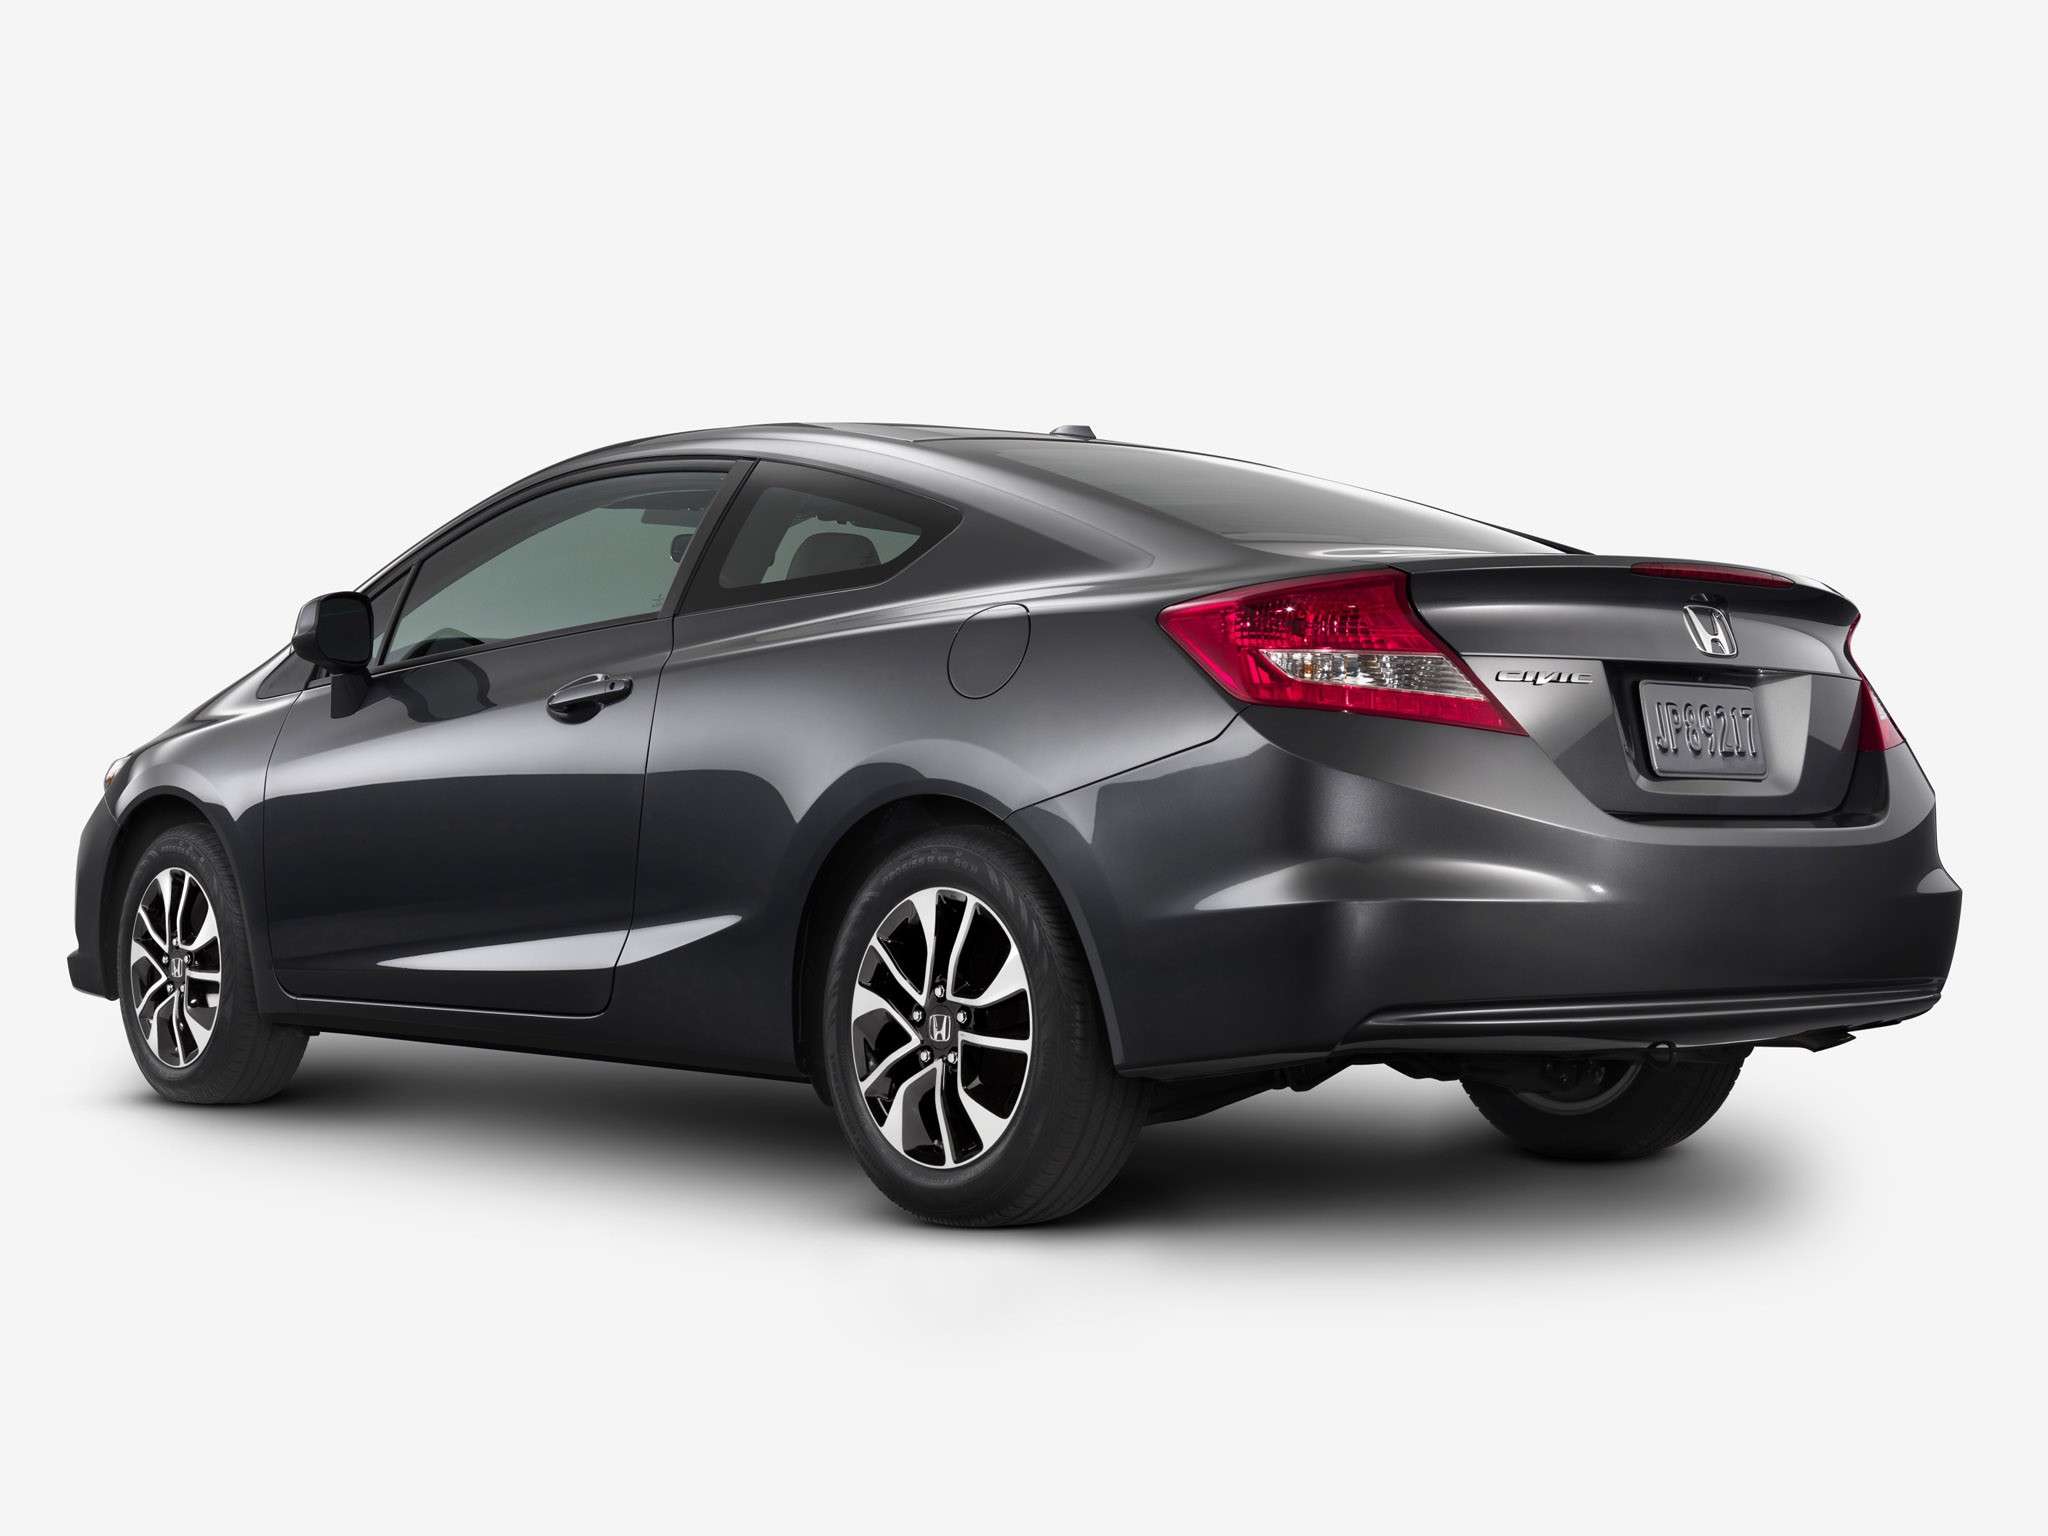 2013 Honda Civic Coupe USA